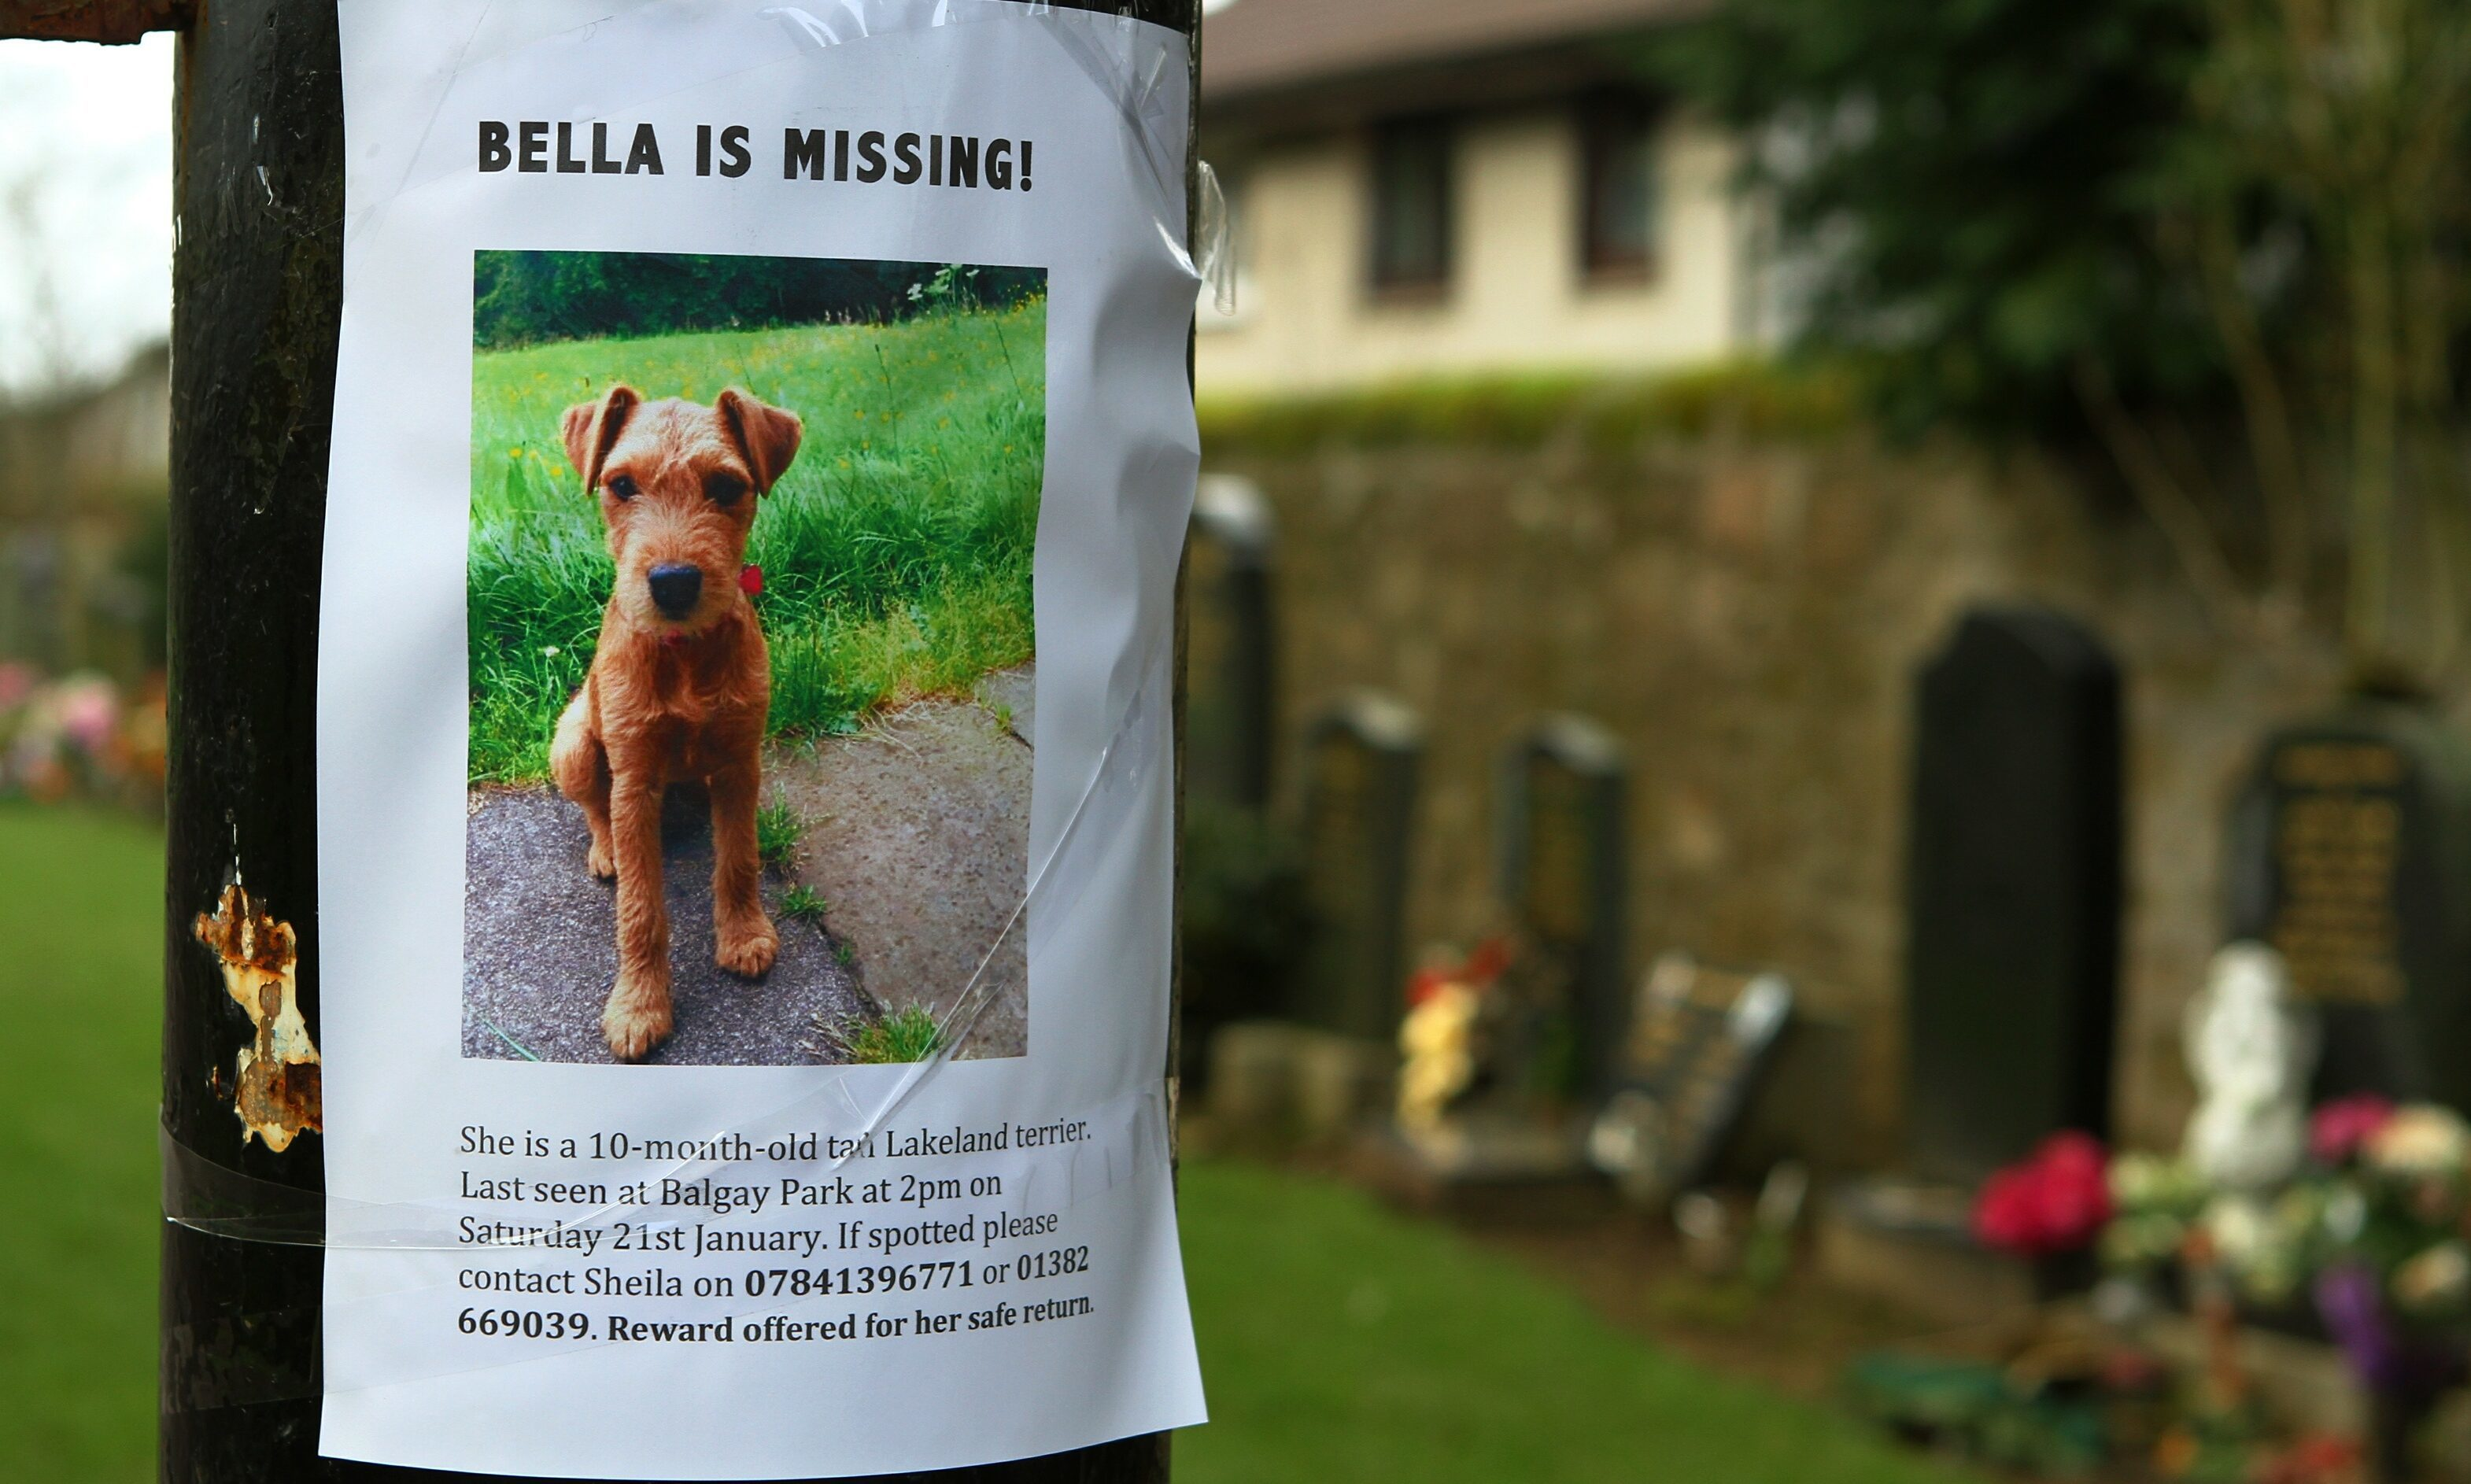 One of the flyers for missing dog Bella on a post at Balgay Cemetery.